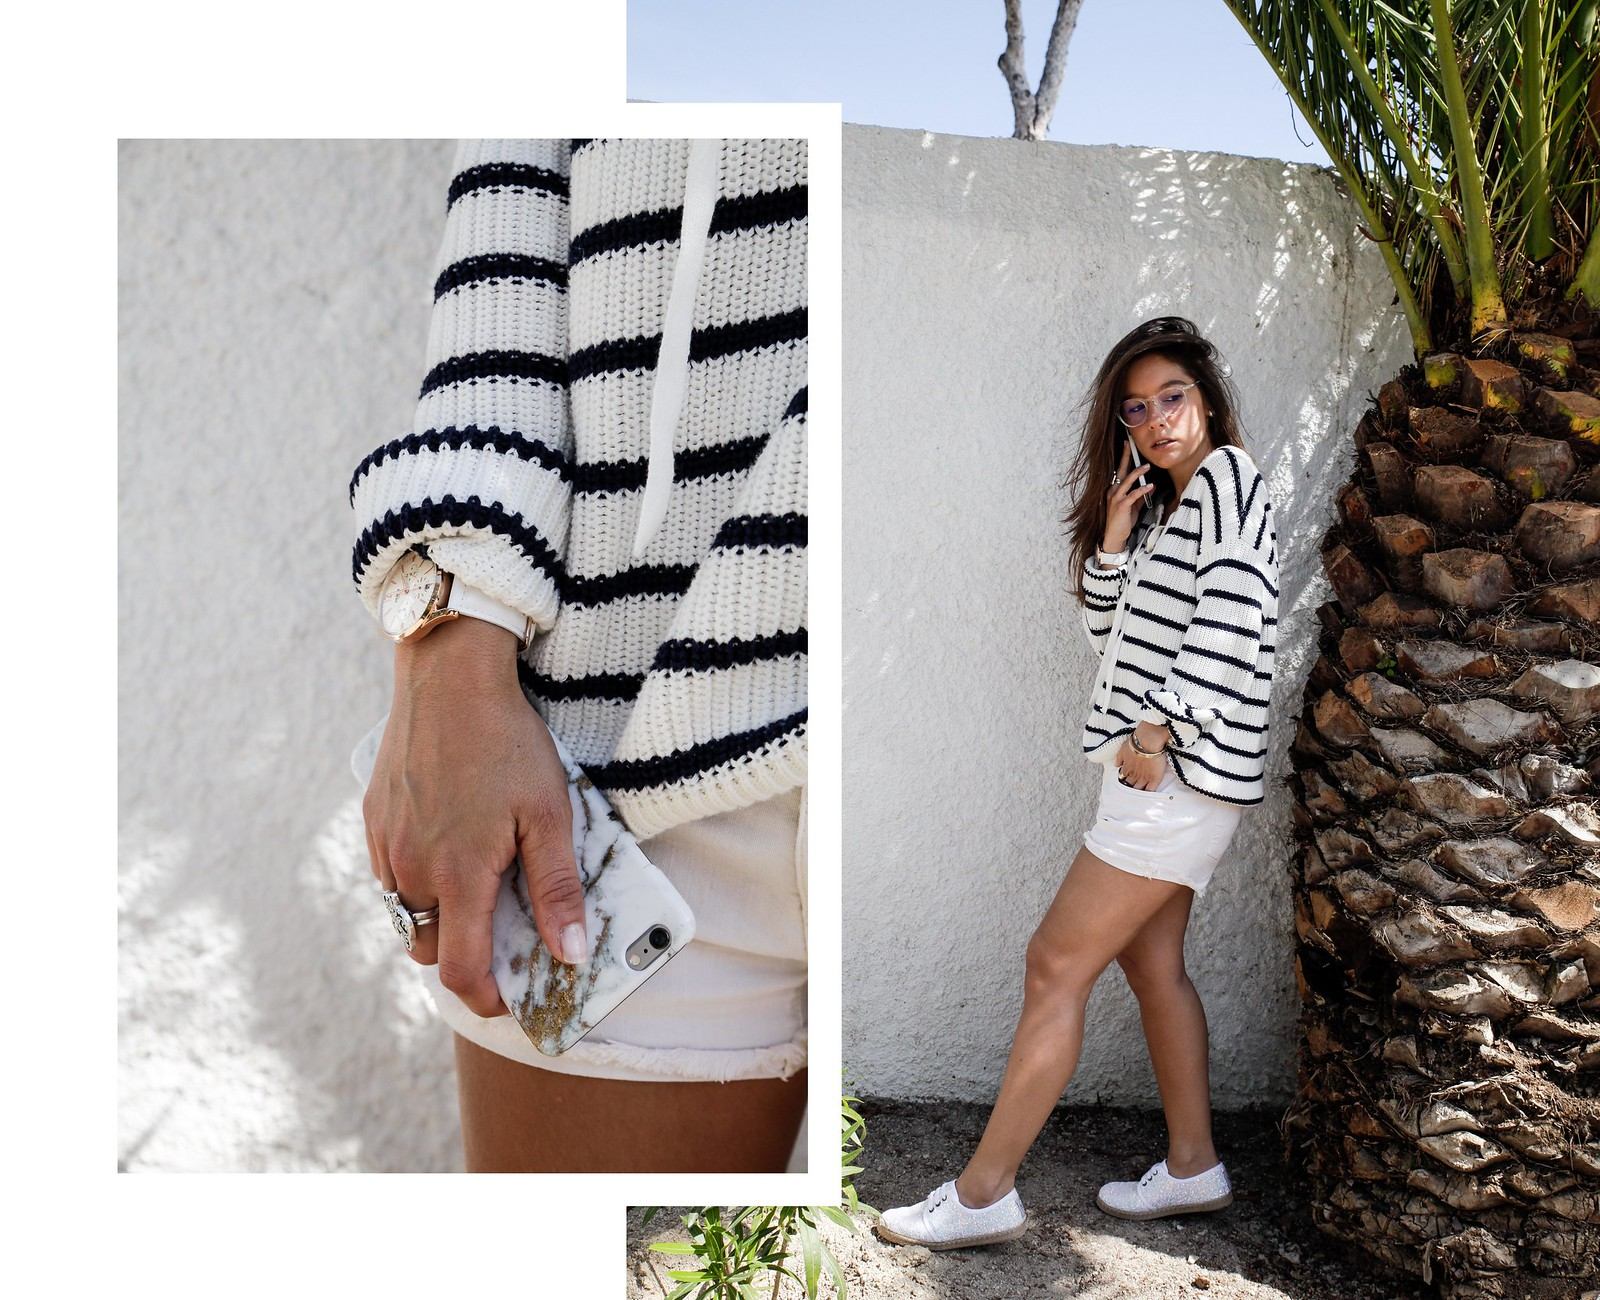 08_mediterranean_girl_with_flossy_style_sequins_theguestgirl_sitges_barcelona_influencer